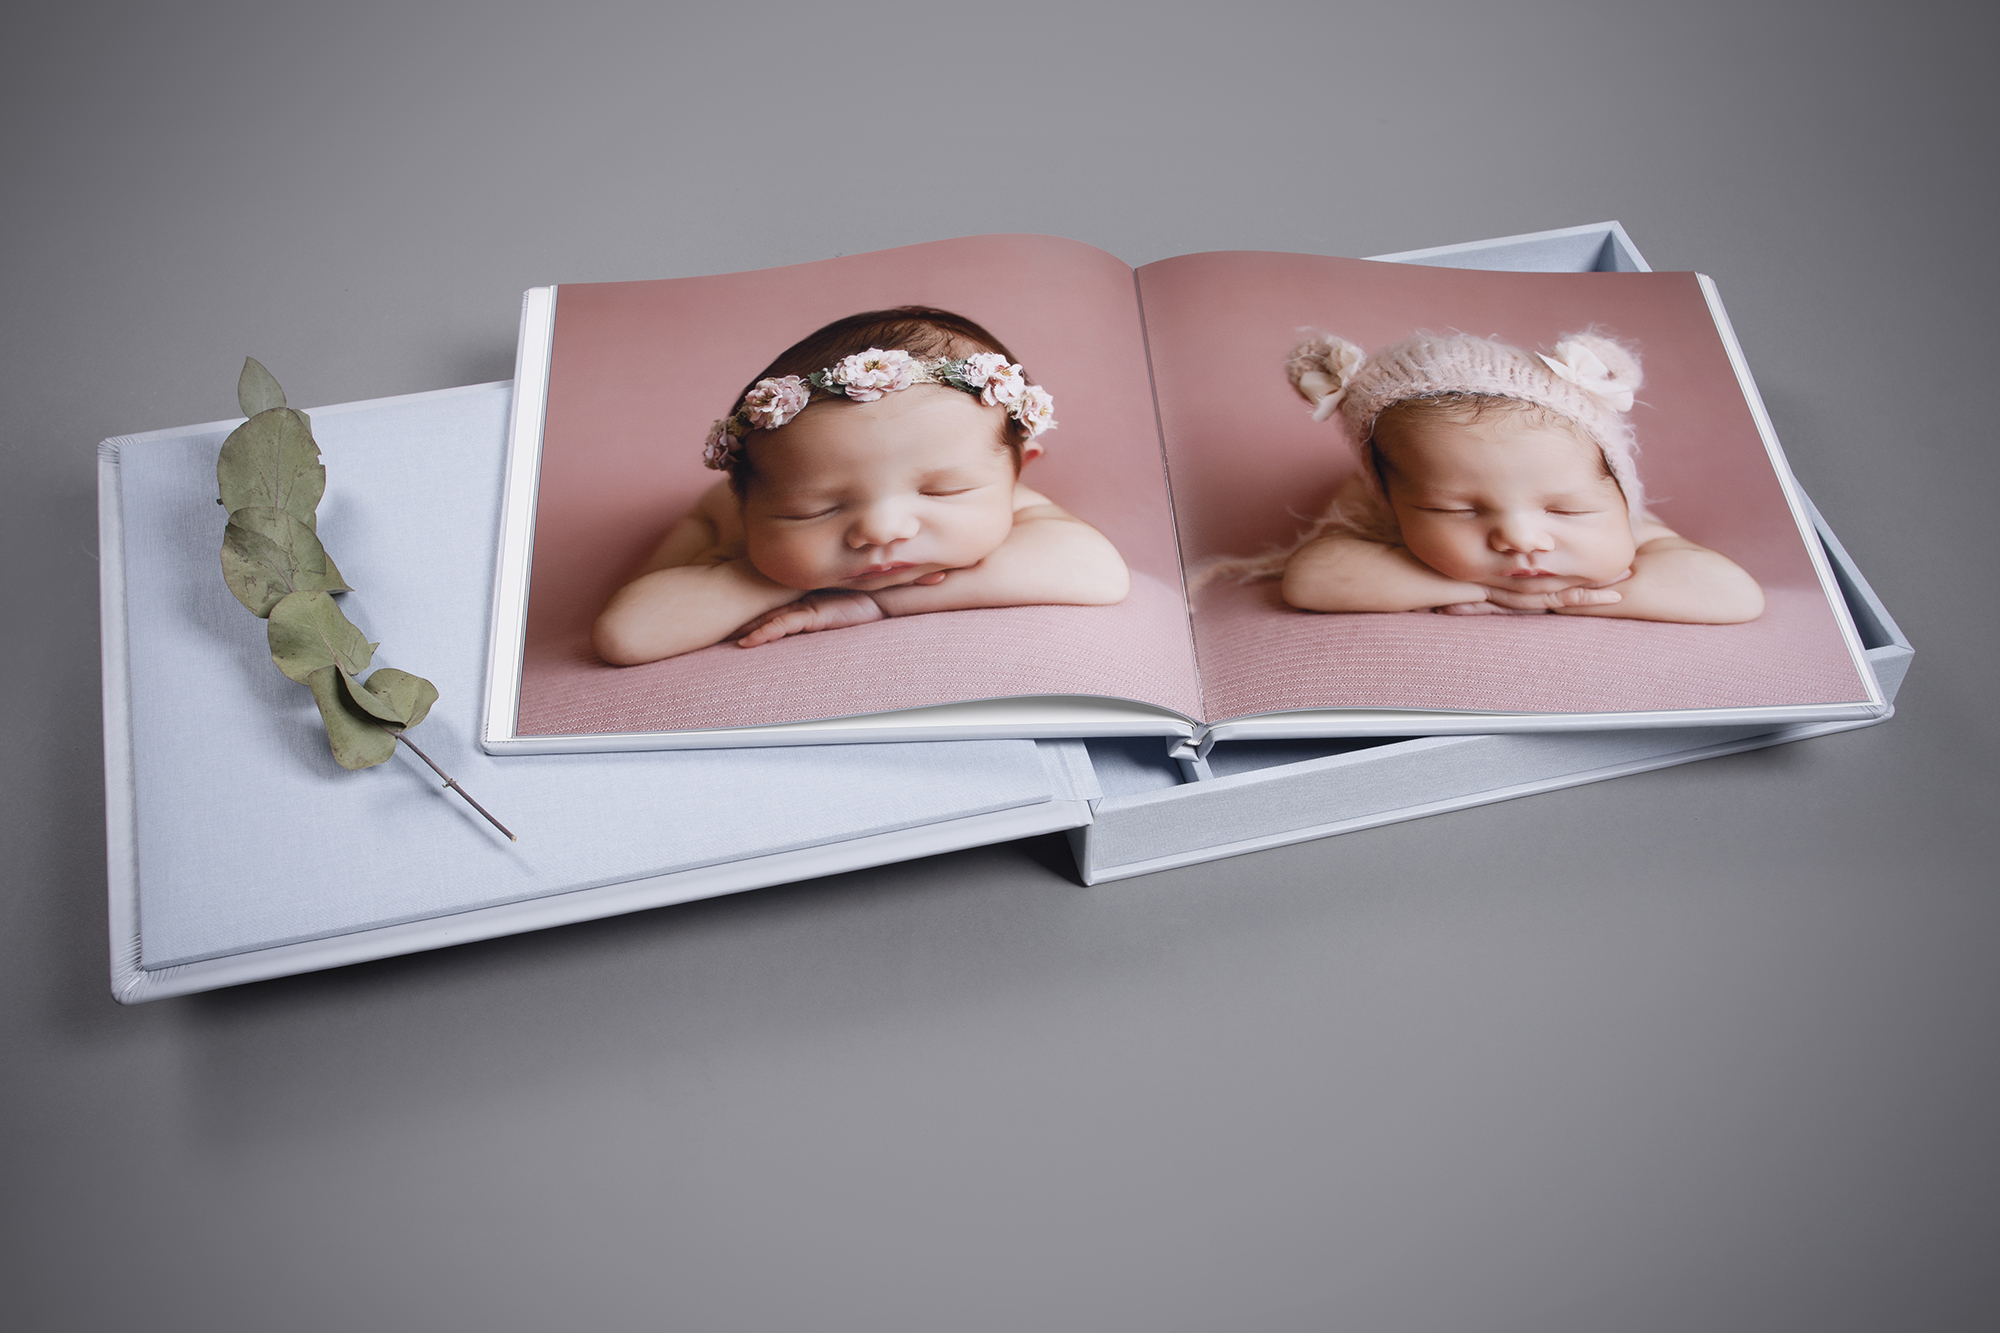 Ana Brandt Photography in Professional Print Set